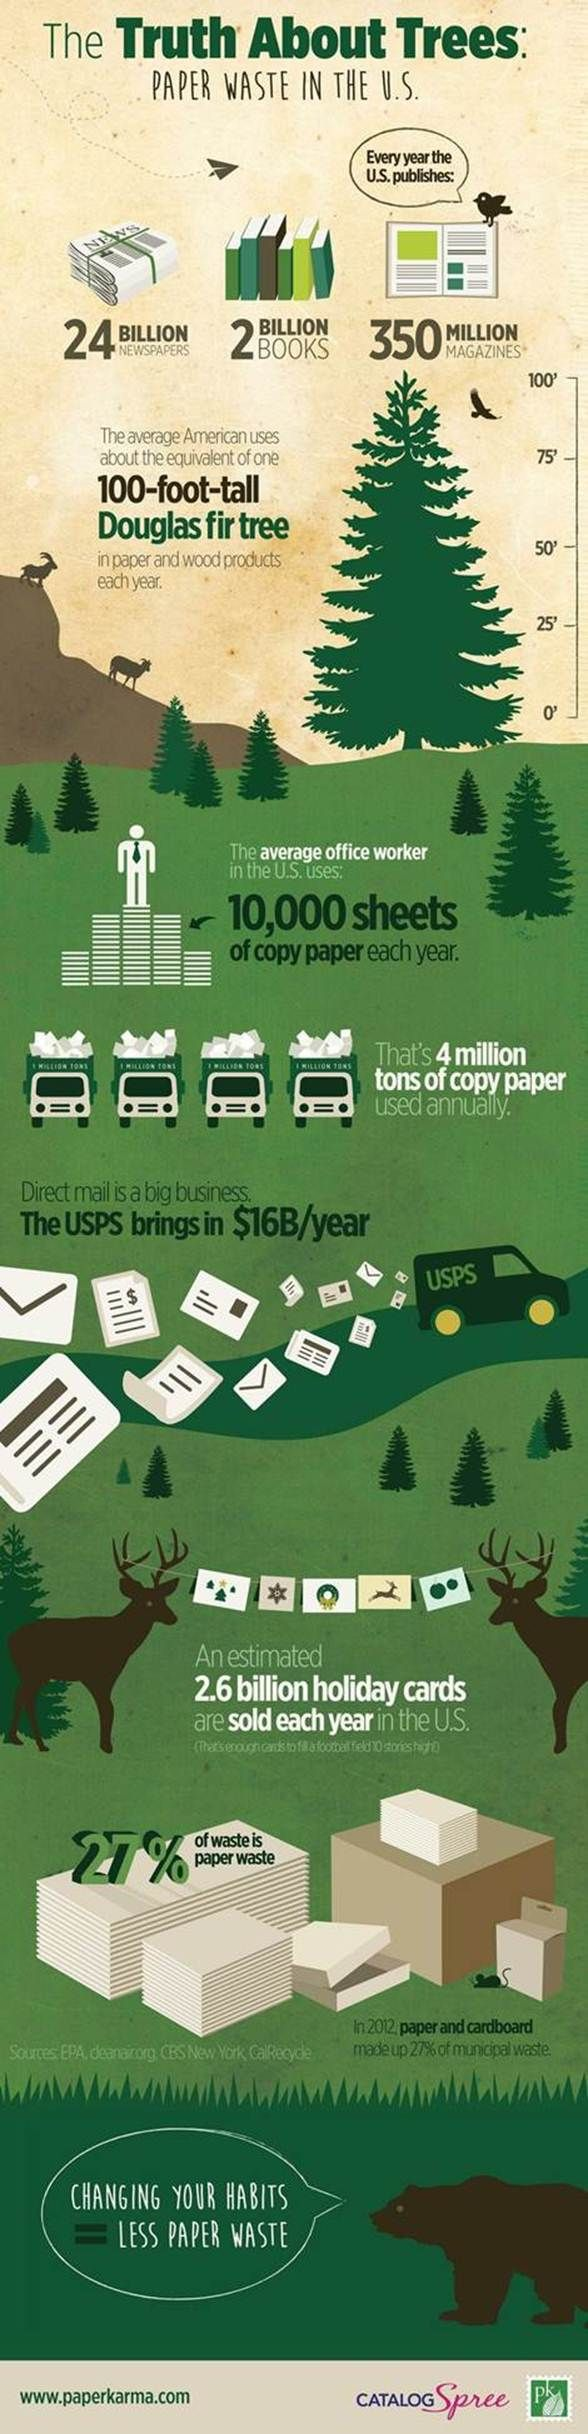 This graphic shows the amount of paper used by Americans in a year. Represented physically by dump trucks and the trees that are cut down and killed, viewers are able to solidify what is often a vague concept to many people. More of an impression is made by showing consumers a visual of the environmental impact they make in their everyday lives, and the amount of change it is possible to make in  a year.